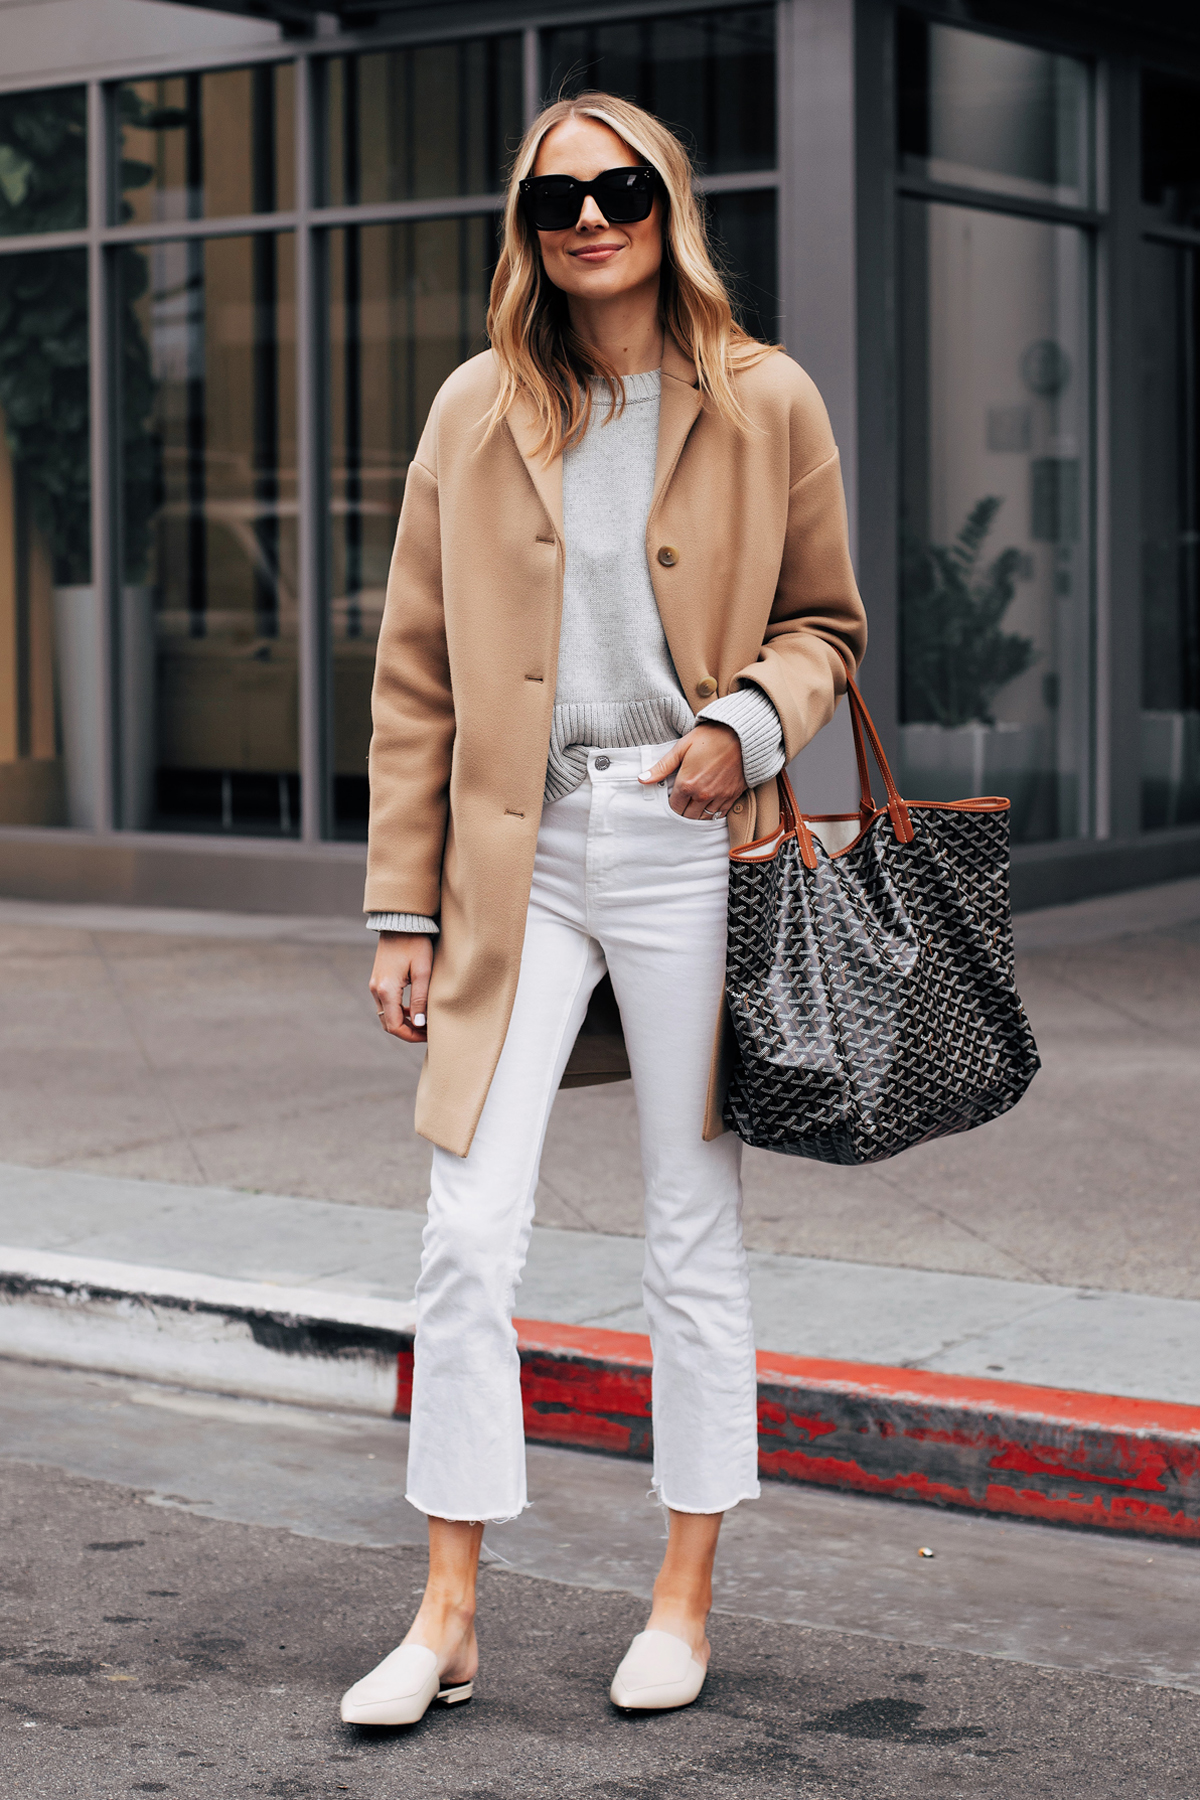 Fashion Jackson Capsule Wardrobe Wearing Everlane Camel Coat Everlane Grey Sweater Everlane White Crop Jeans Everlane White Mules Goyard Tote